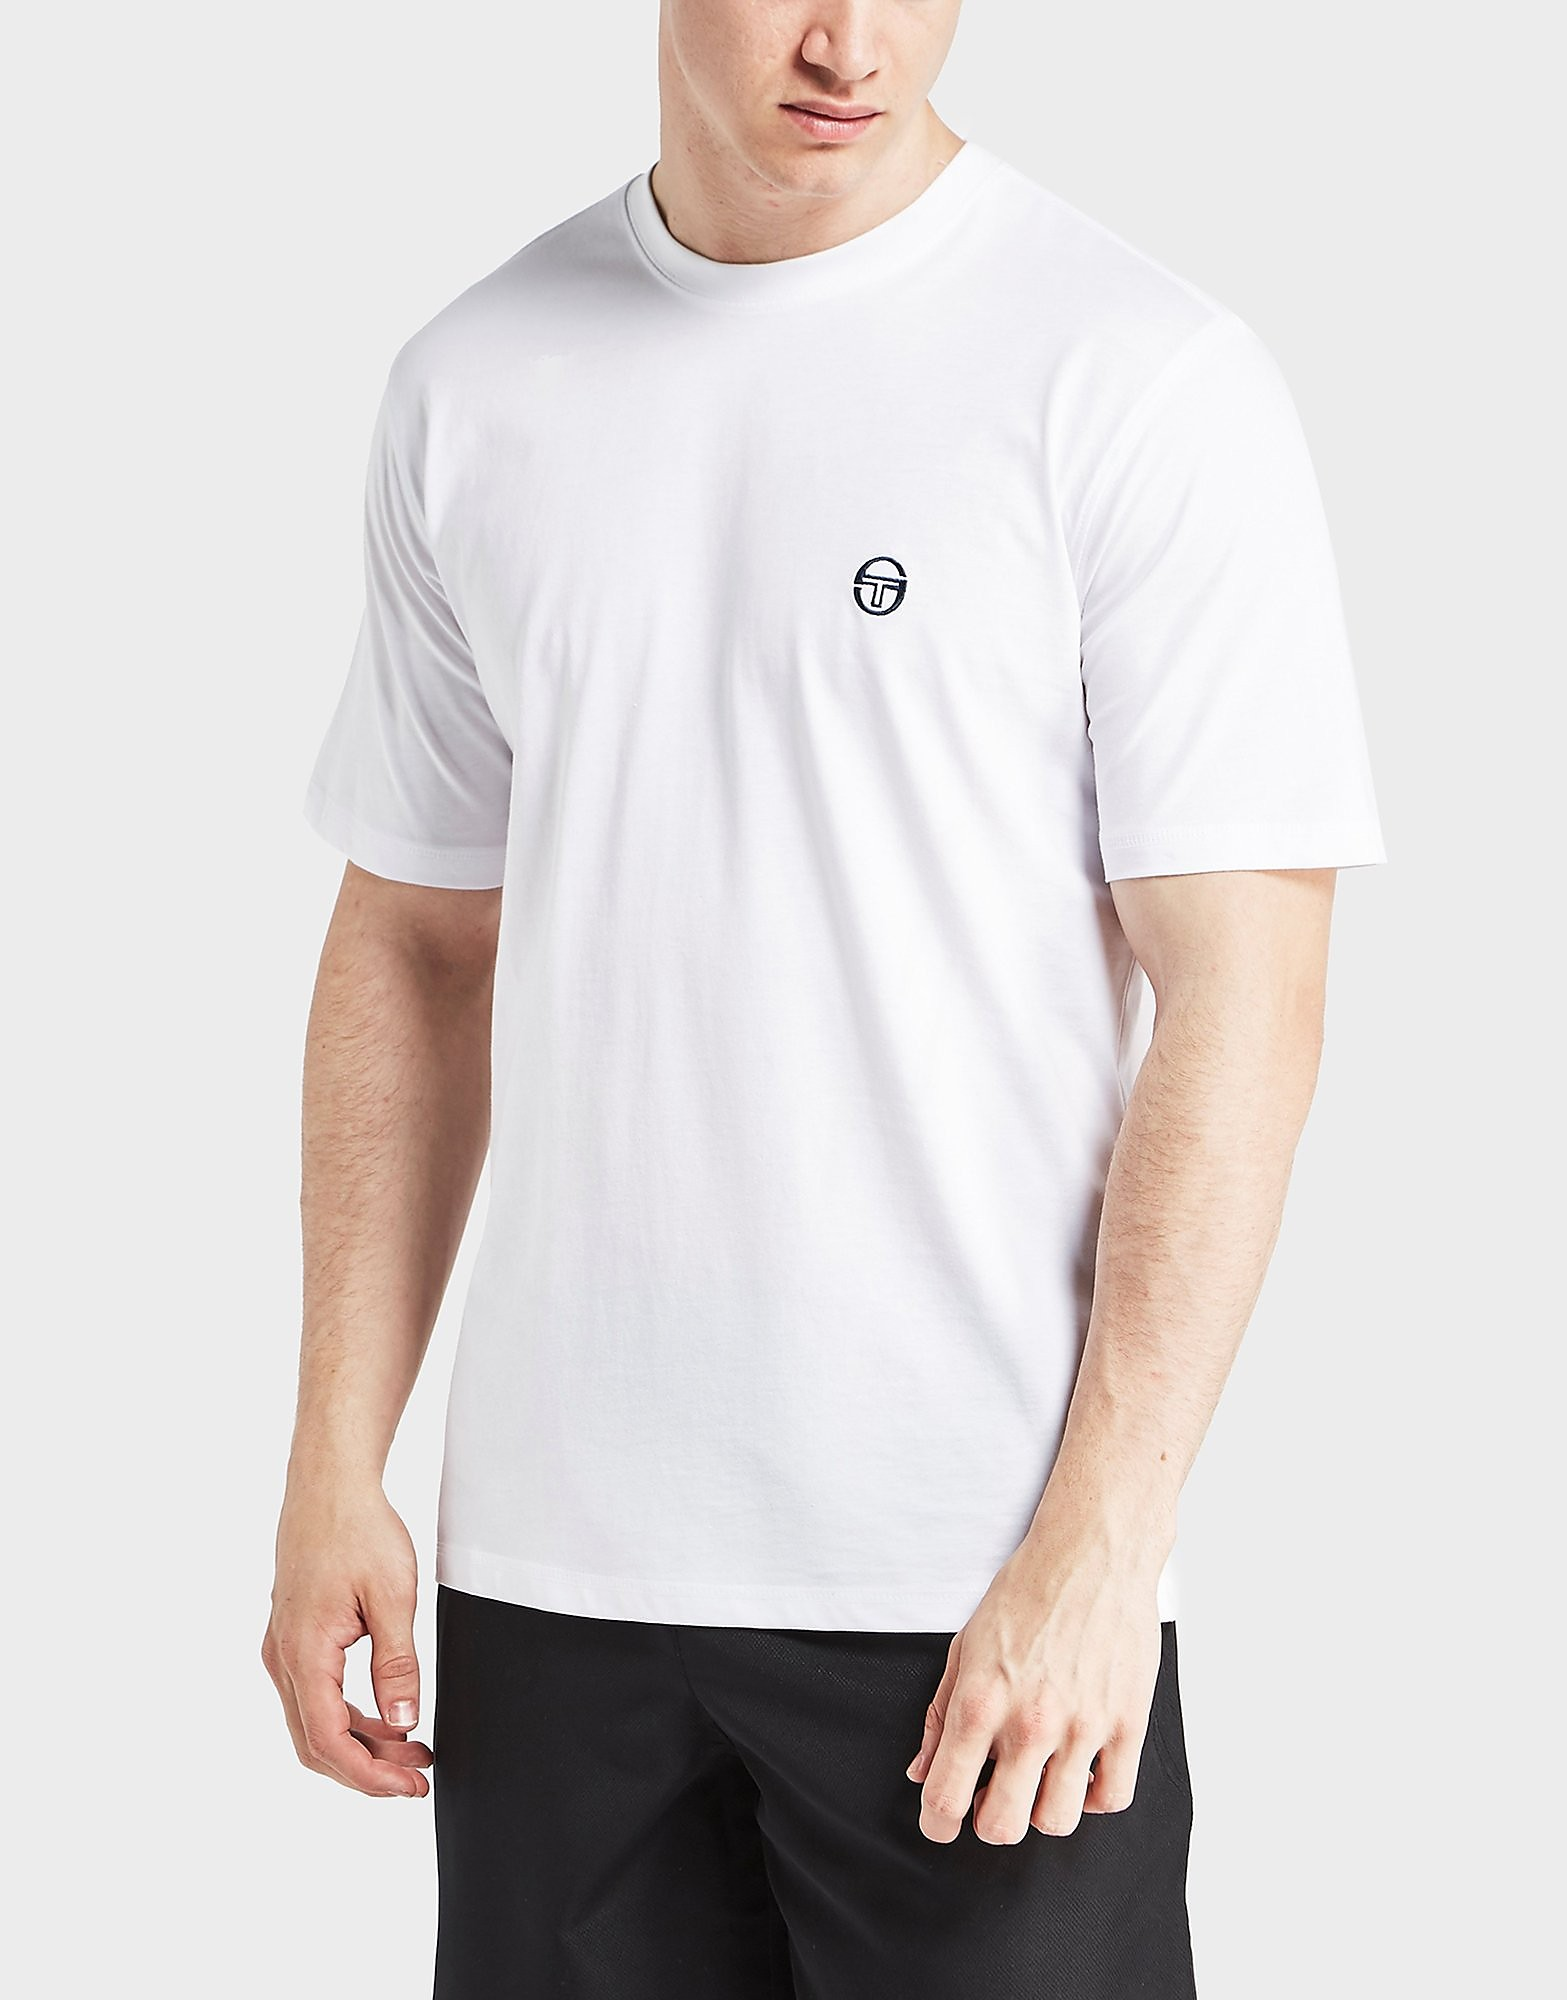 Sergio Tacchini Daiocco Essen Short Sleeve T-Shirt